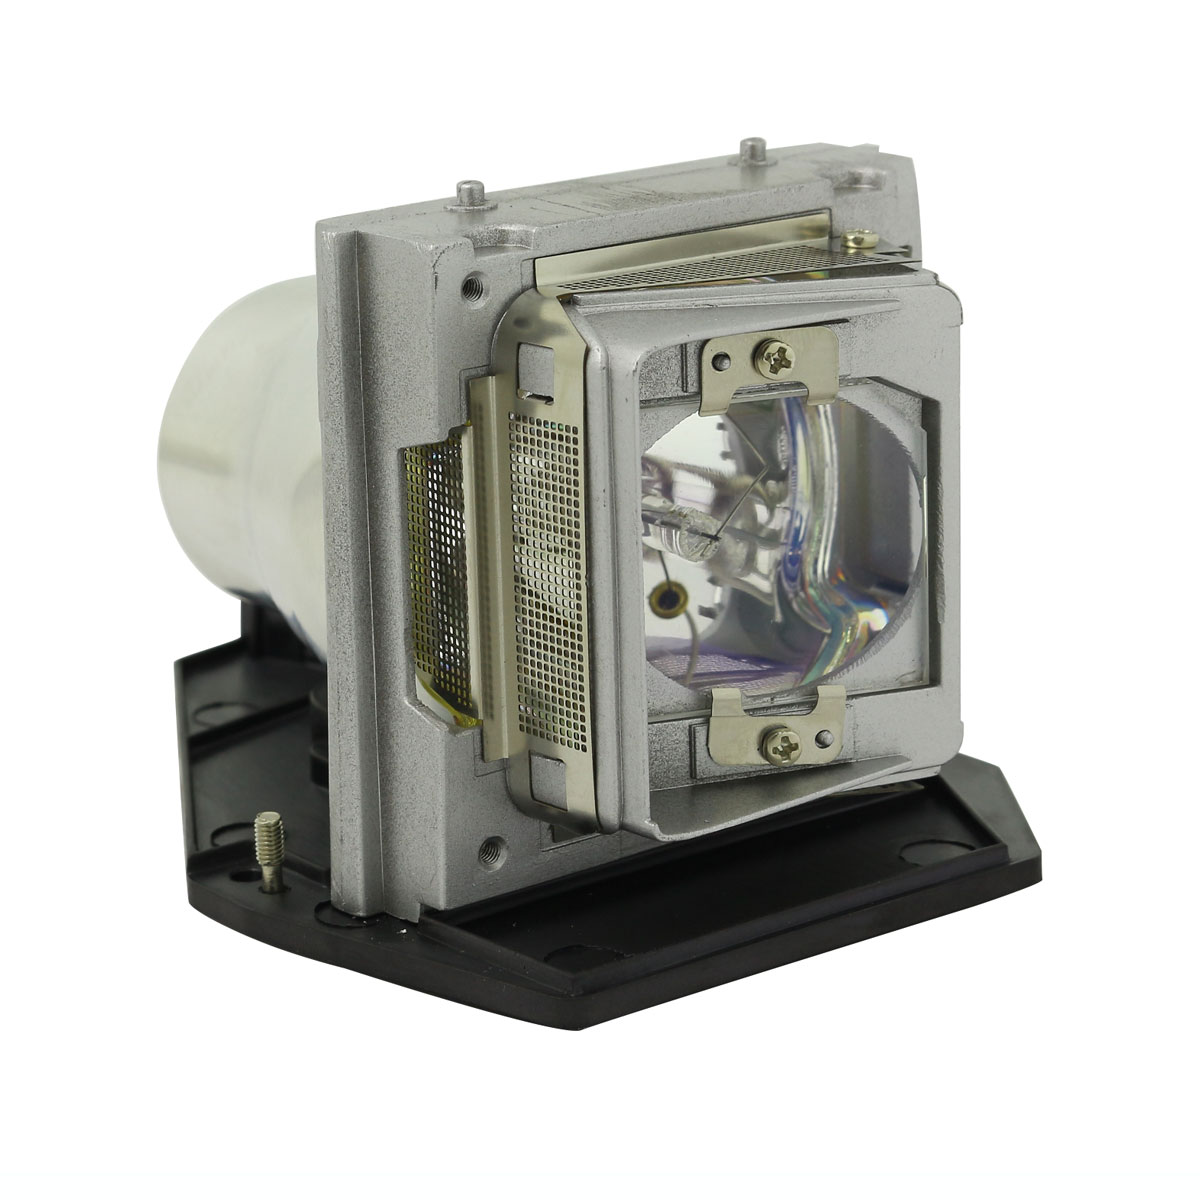 Acer P7280 Projector Housing with Genuine Original OEM Bulb